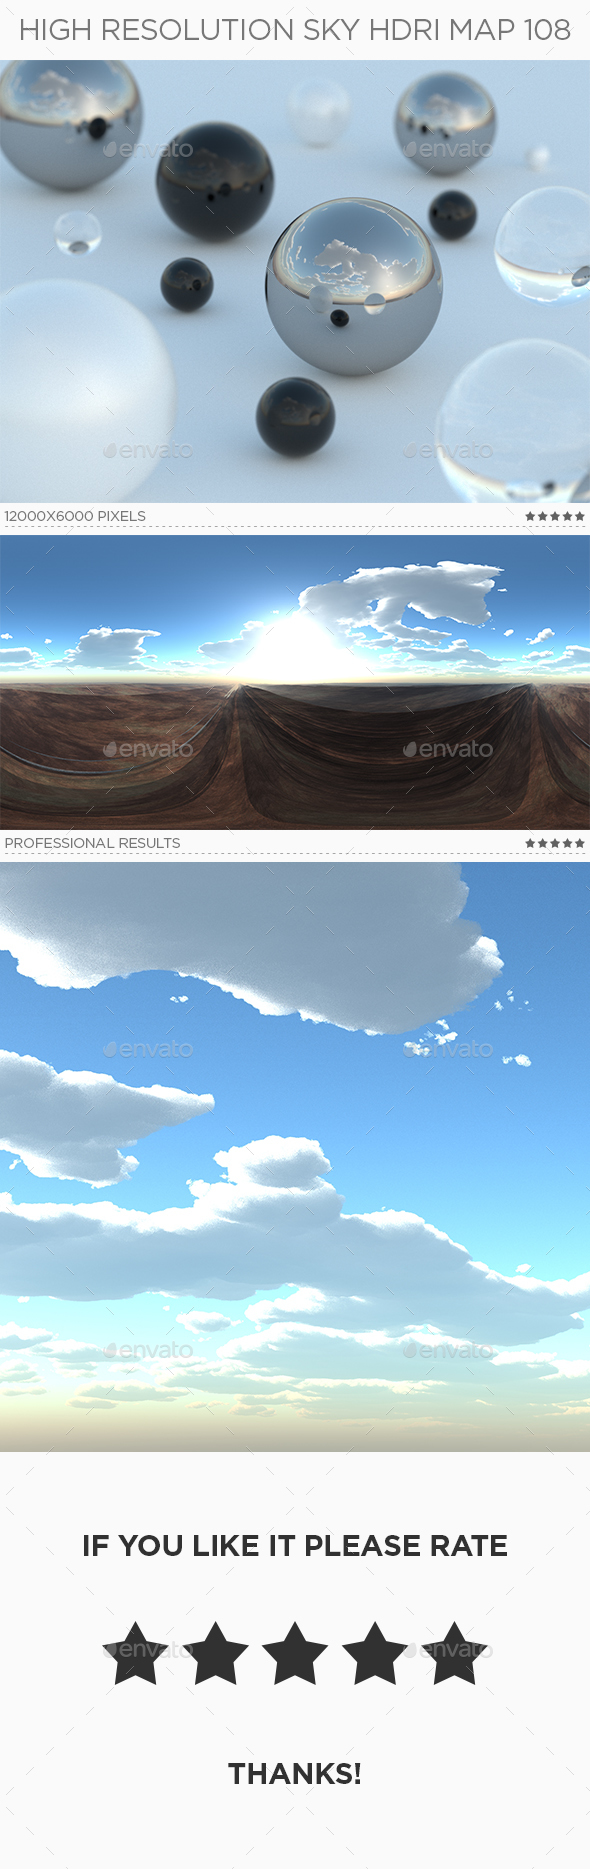 High Resolution Sky HDRi Map 108 - 3DOcean Item for Sale